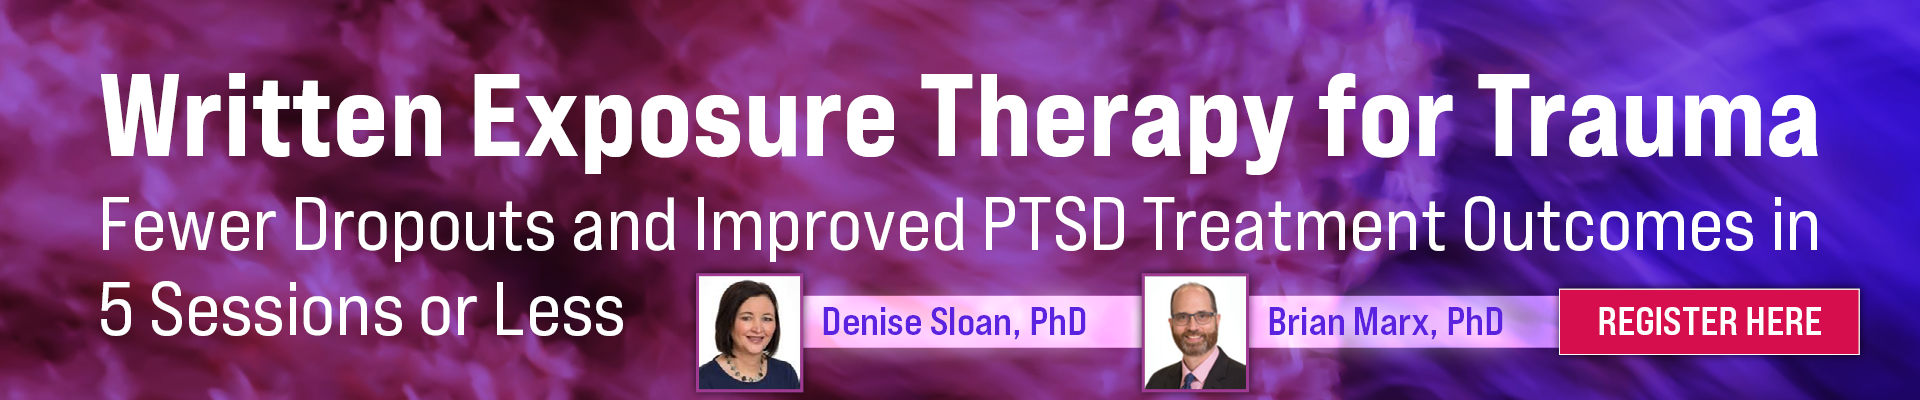 Written Exposure Therapy for Trauma: Fewer Dropouts and Improved PTSD Treatment Outcomes in 5 Sessions or Less